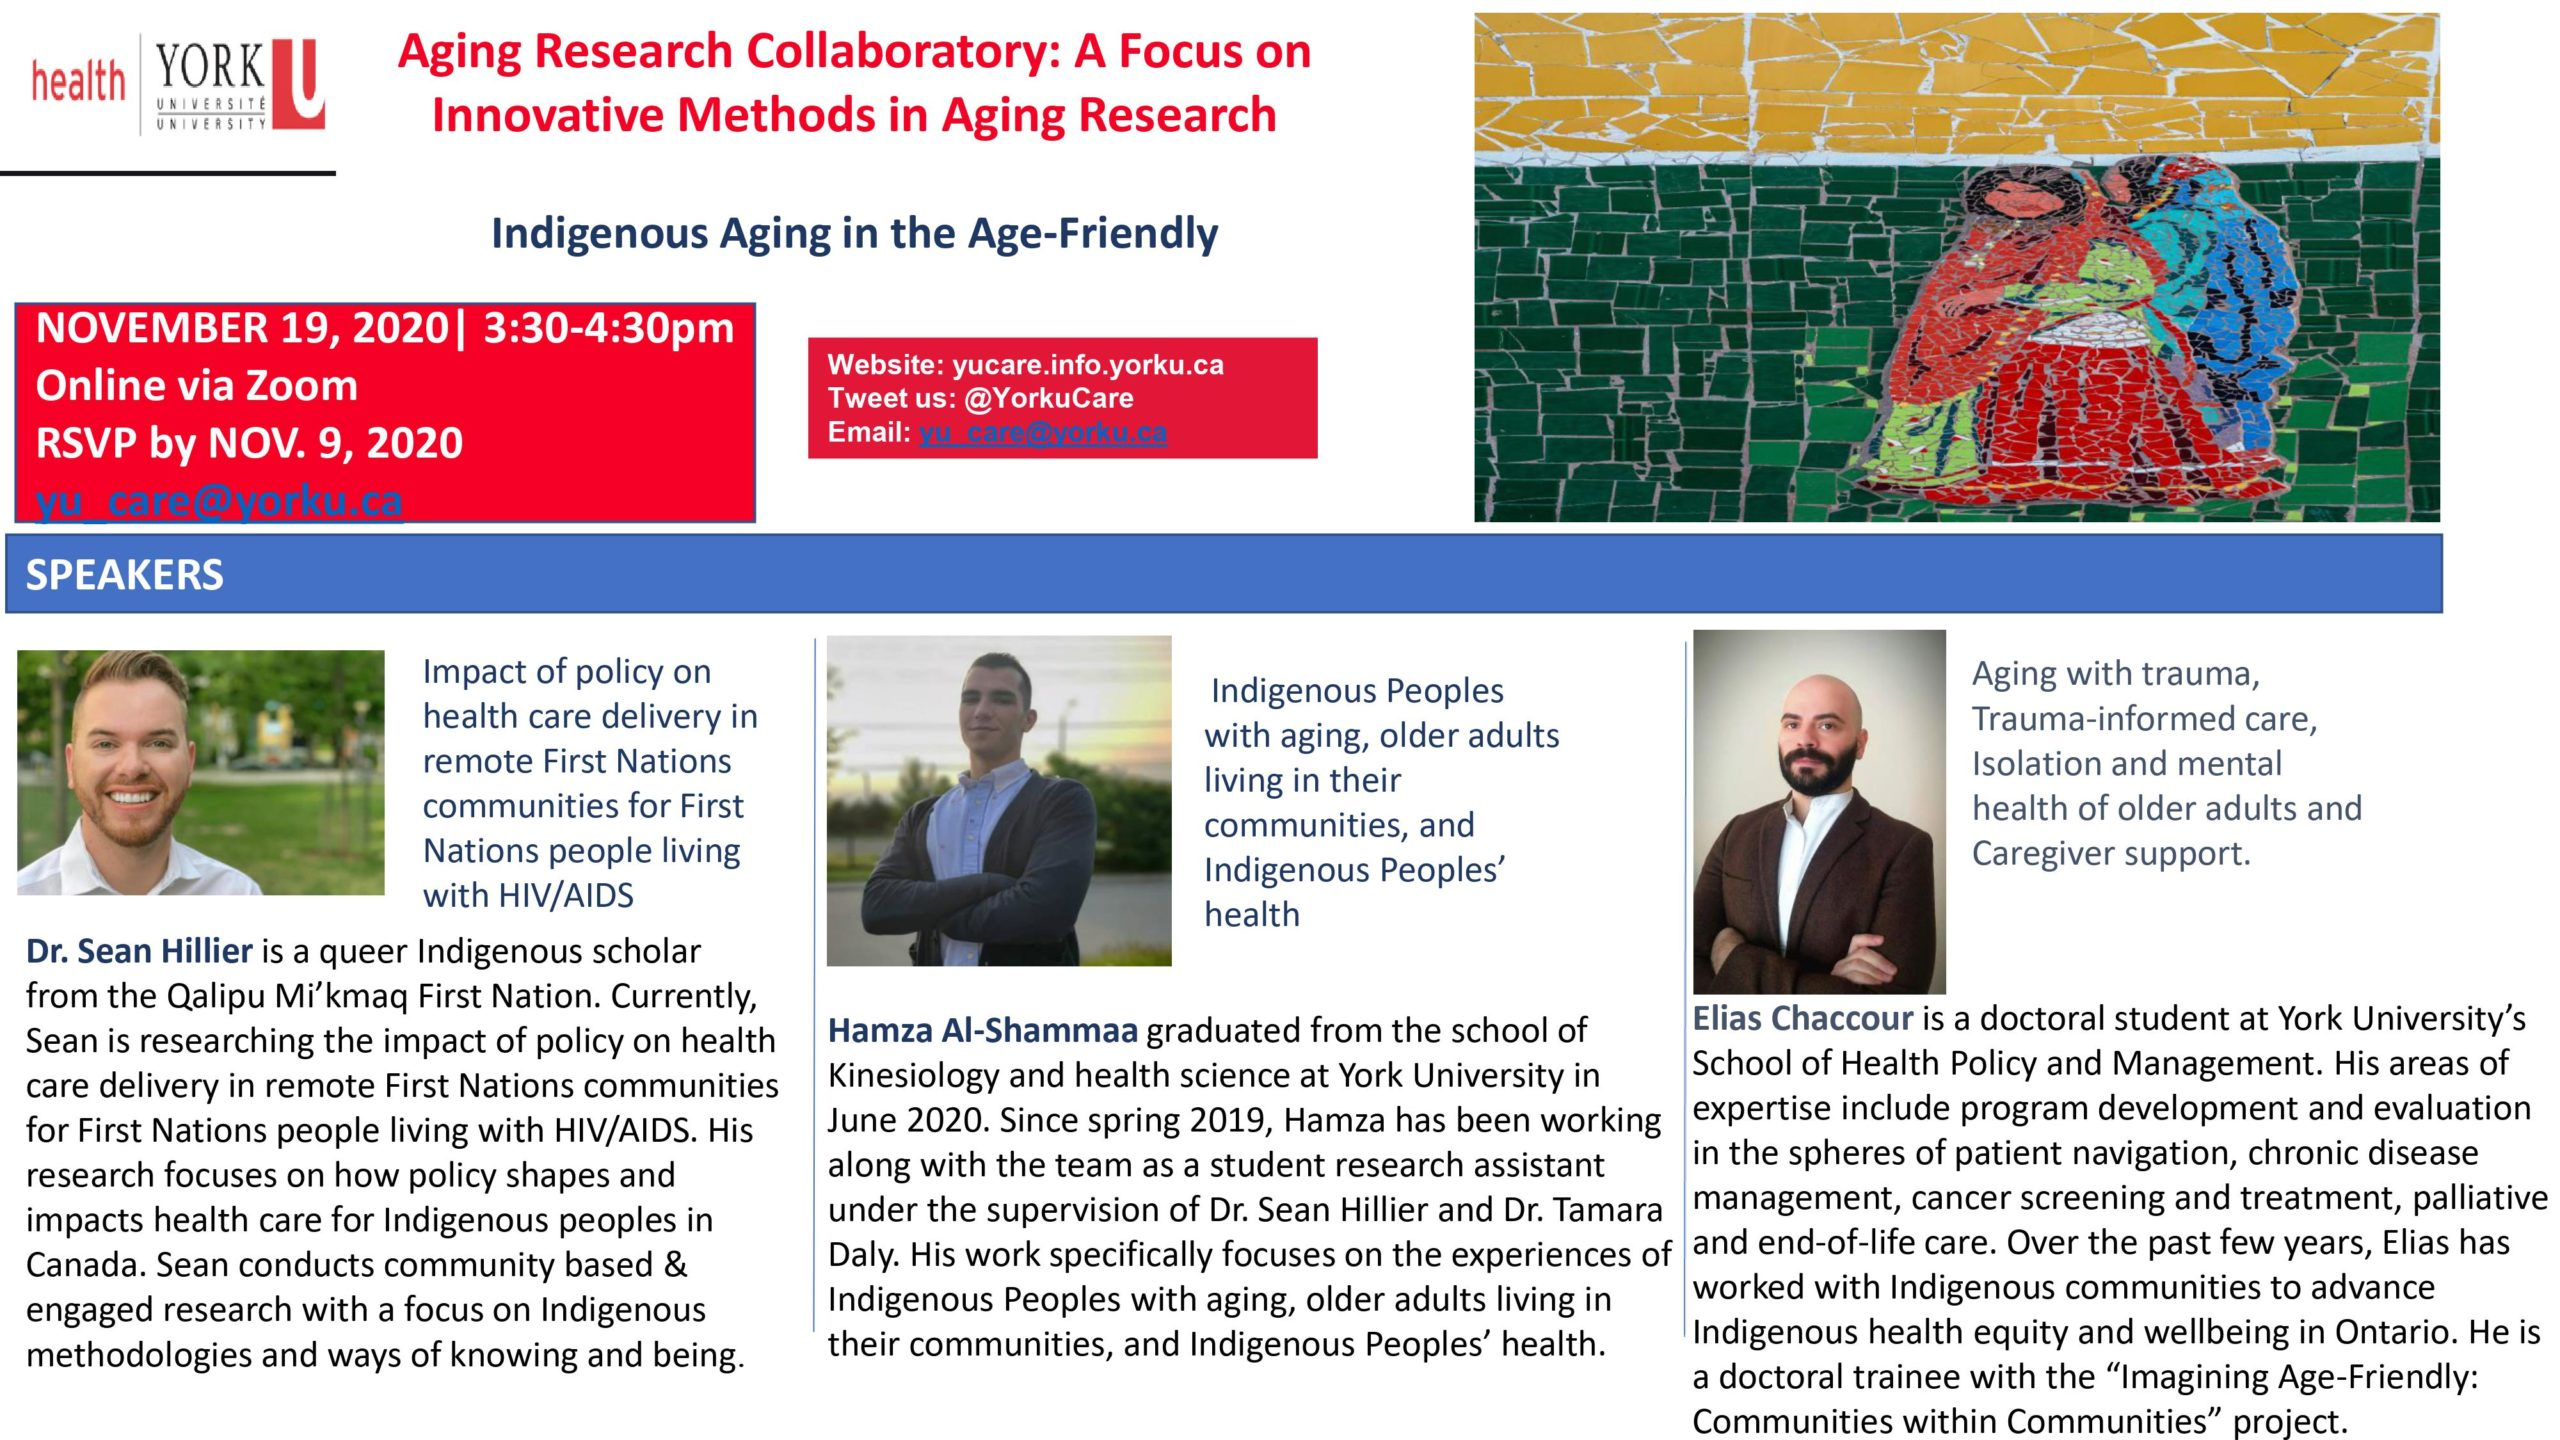 Indigenous Aging in the Age-Friendly with Dr. Sean Hillier, Hamza Al-Shammaa and Elias Chaccour @ Online Via Zoom